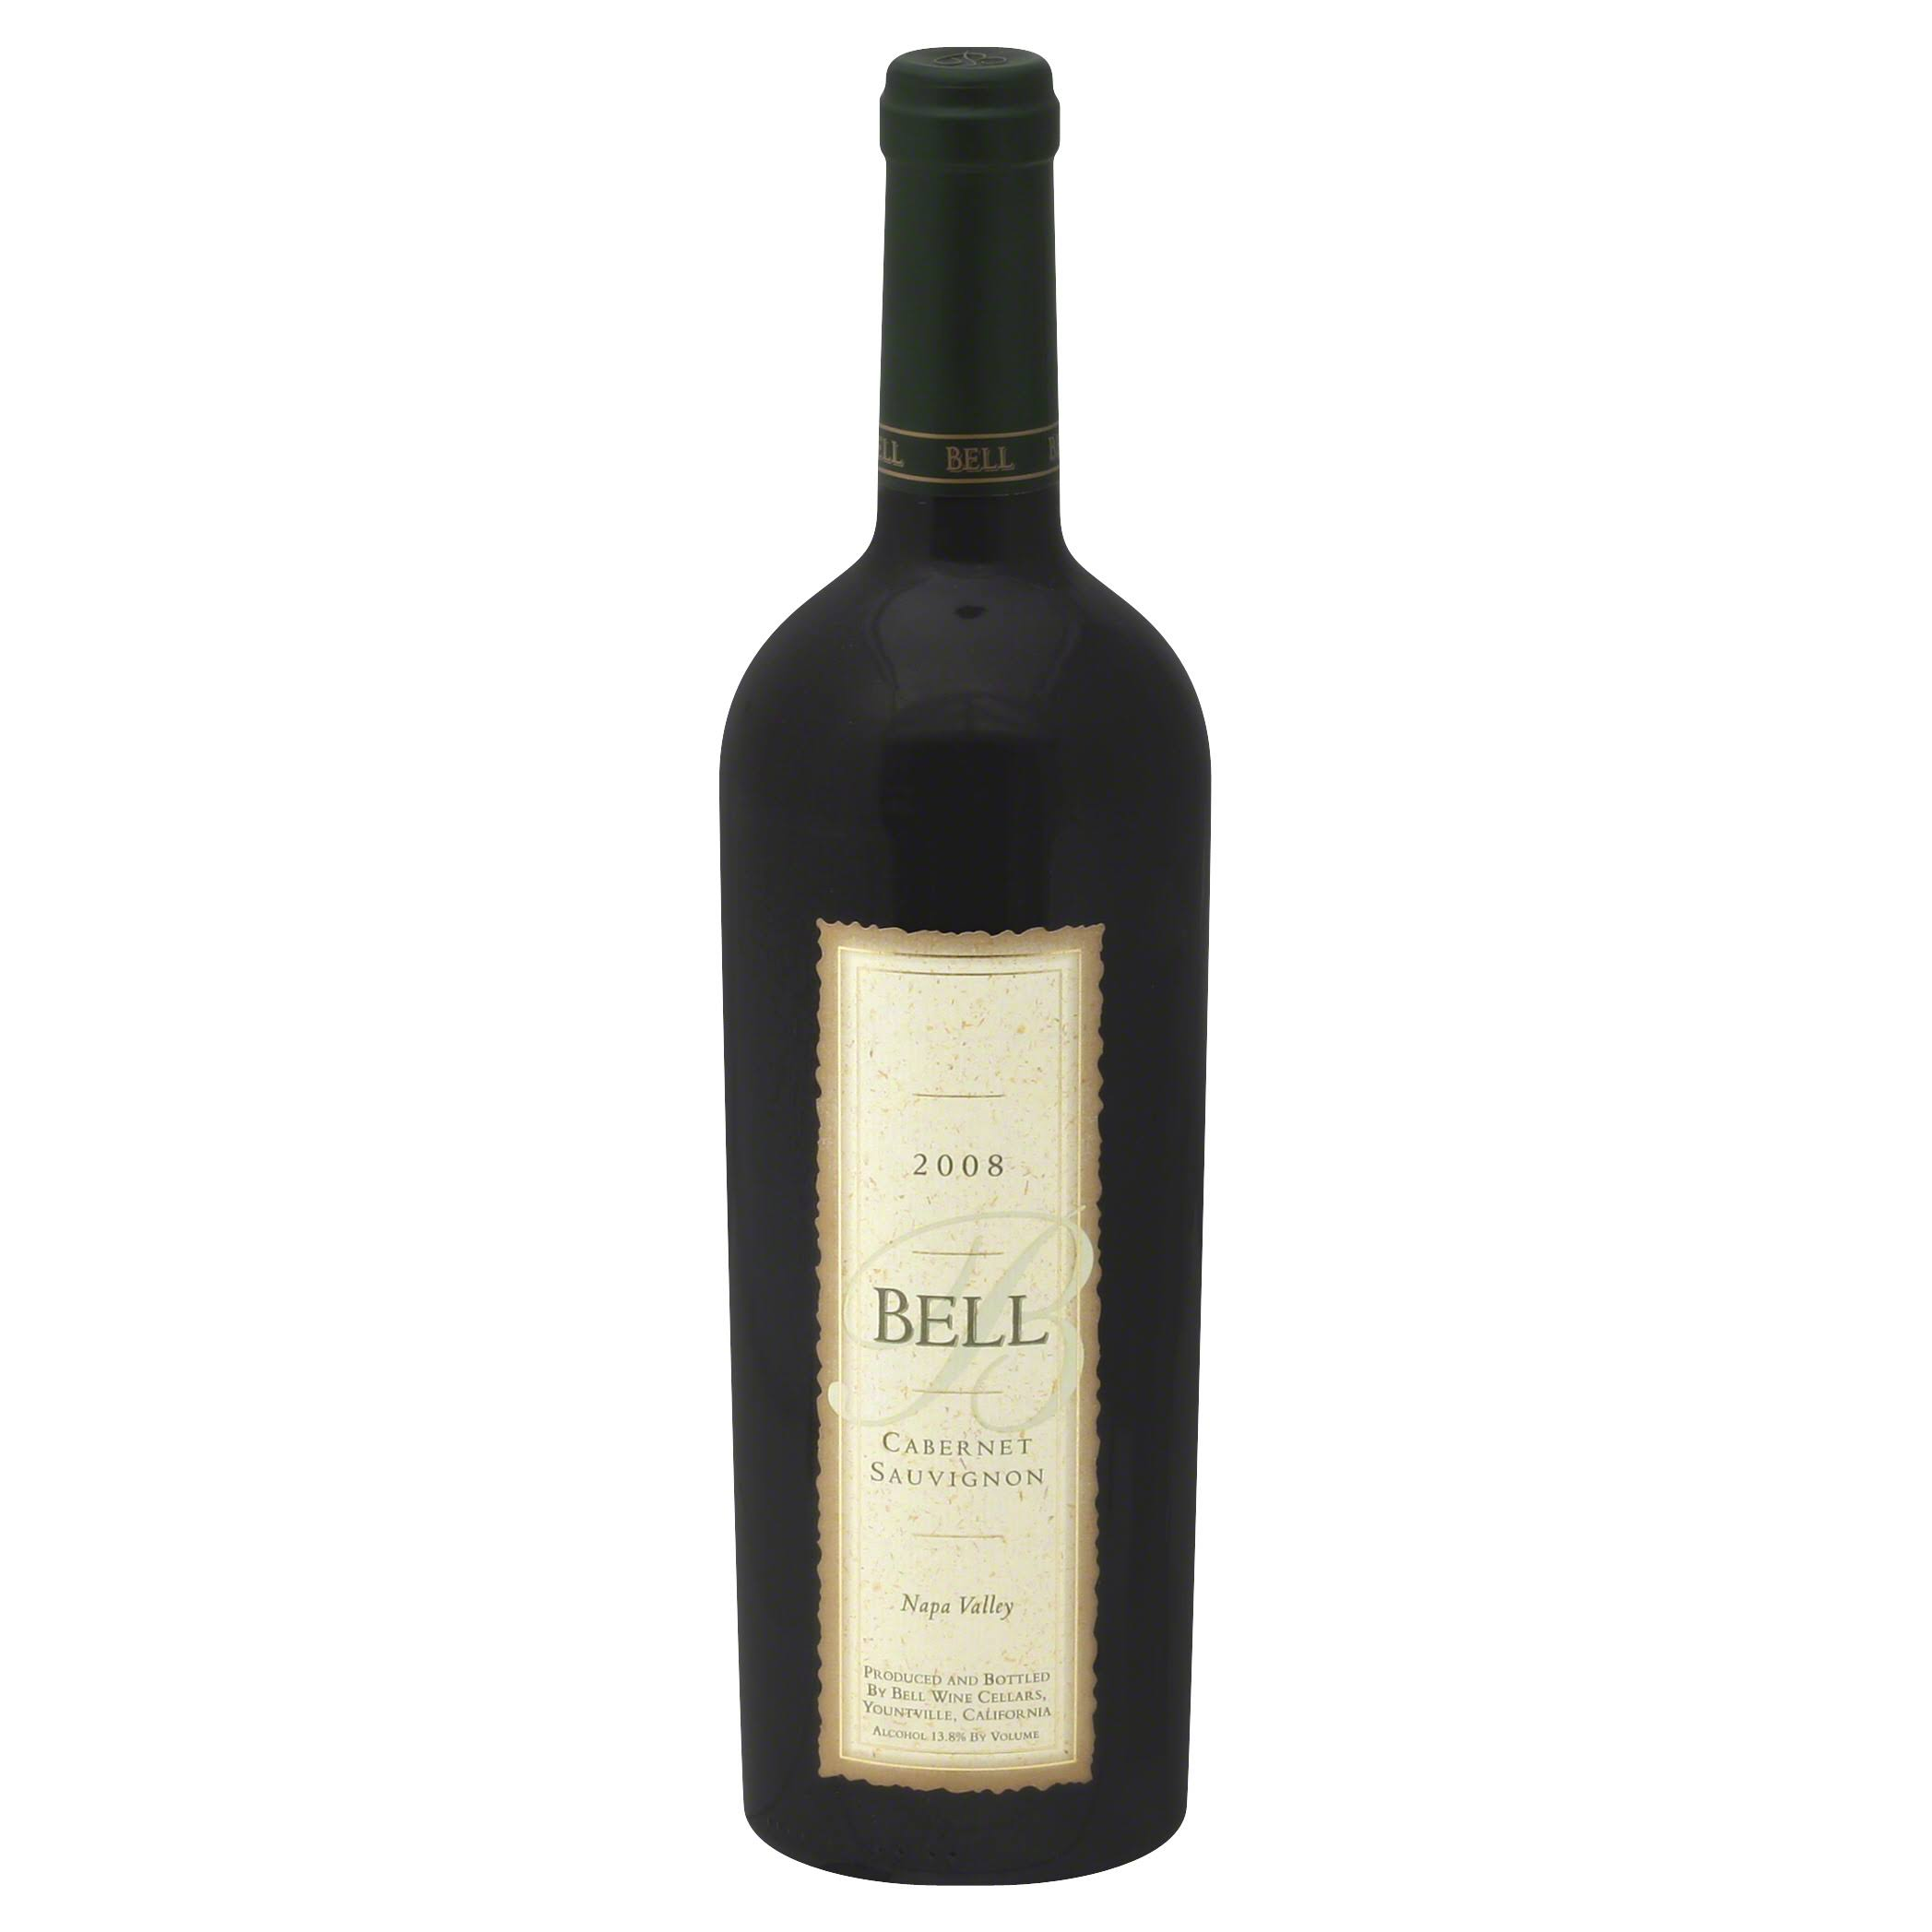 Bell Cabernet Sauvignon, Napa Valley, 2008 - 750 ml